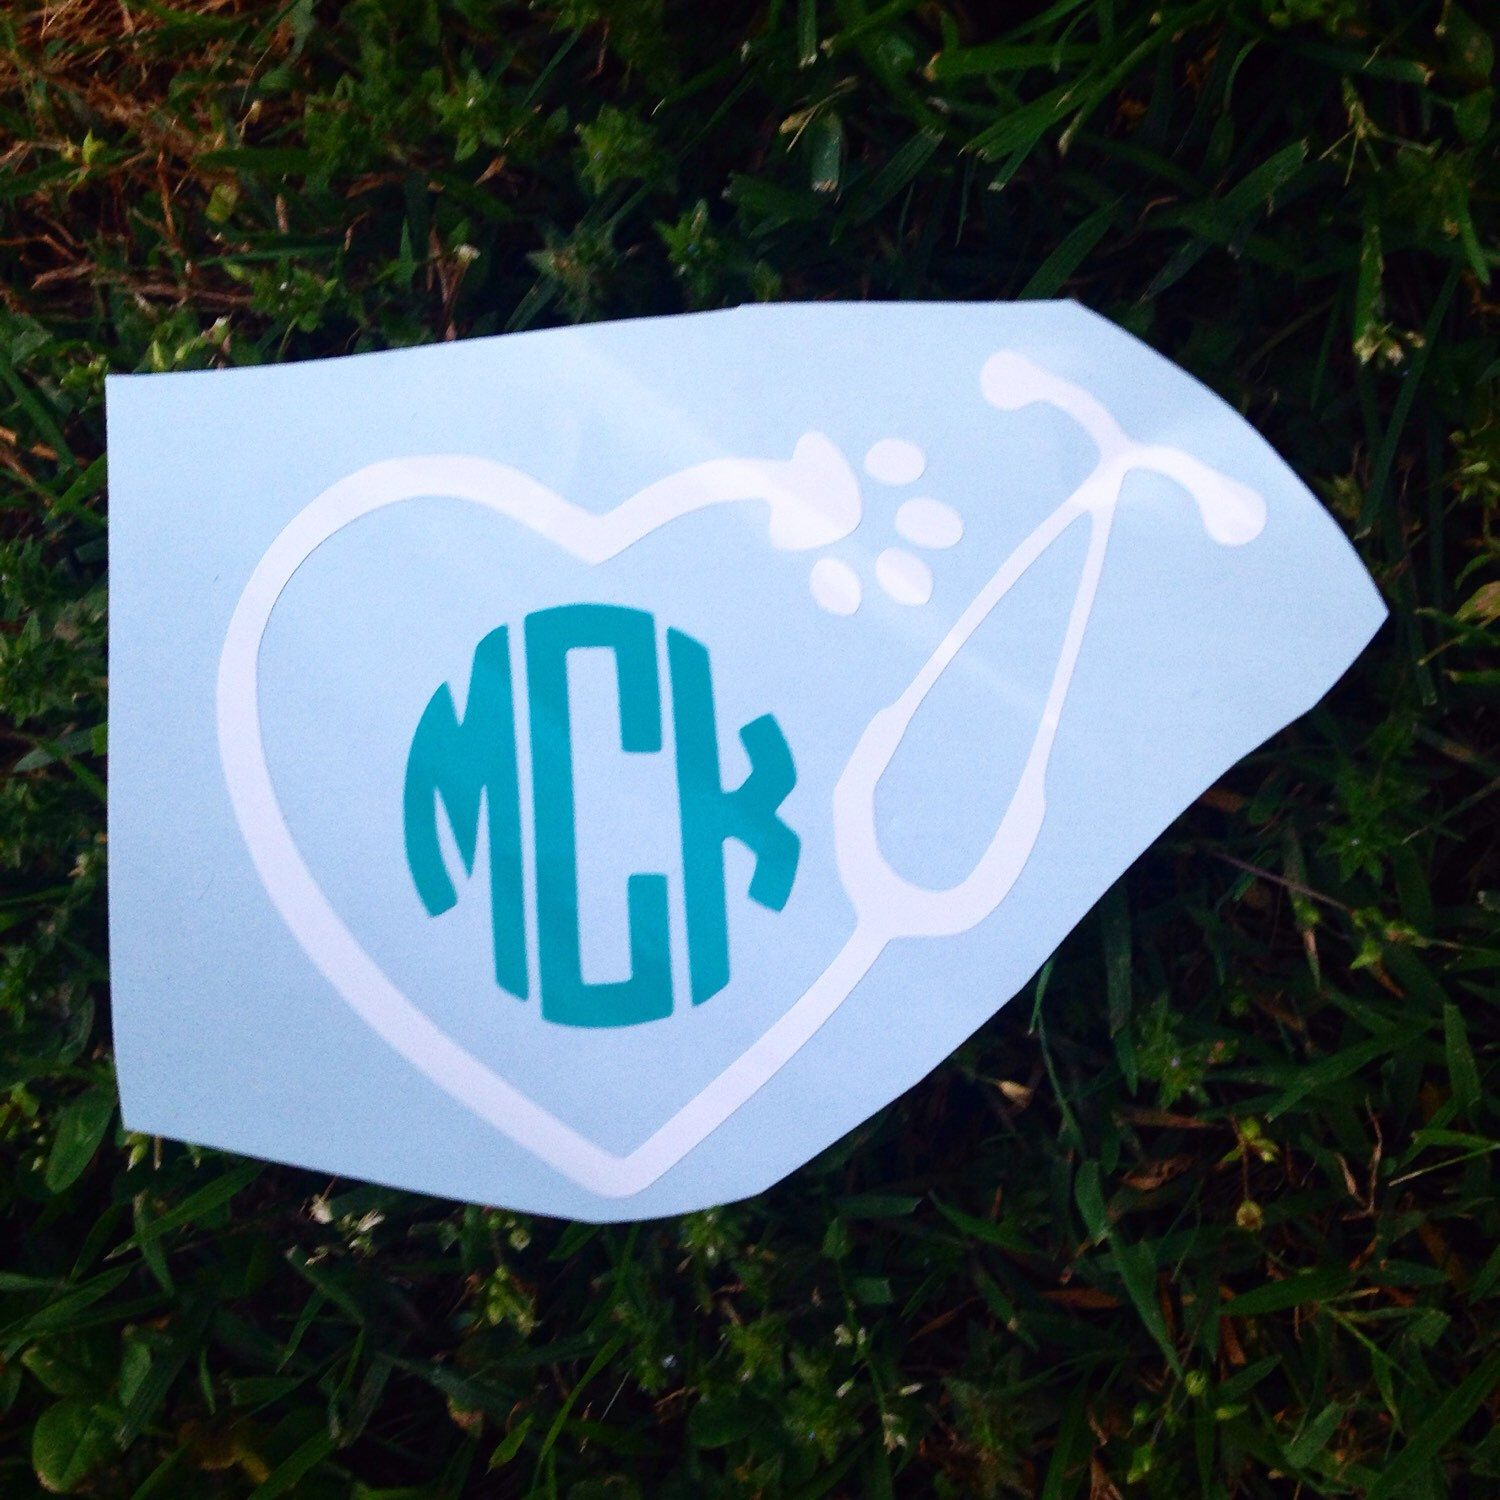 Vet tech vet monogram decal by isaawit on etsy ca4 pinterest vet tech vet monogram decal by isaawit on etsy biocorpaavc Gallery